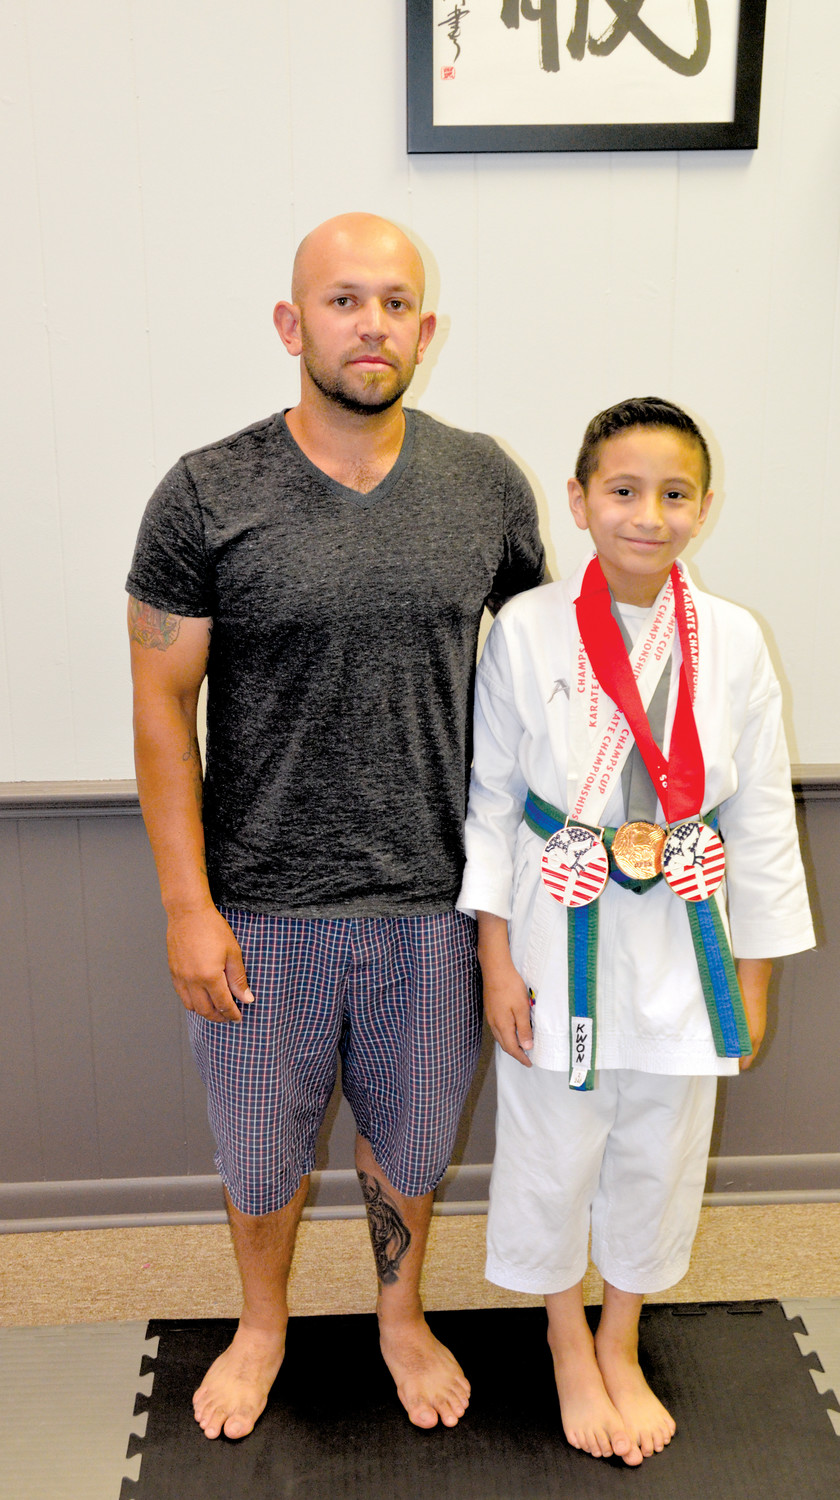 Kaled Garcia, 9, of Clement stands with his father, Julio Barajas. Kaled recently won three medals, a silver and a bronze in Douglasville, Ga., and a bronze for his Kata, in Greenville, S.C. 'I was impressed that I tried my best and got medals.'